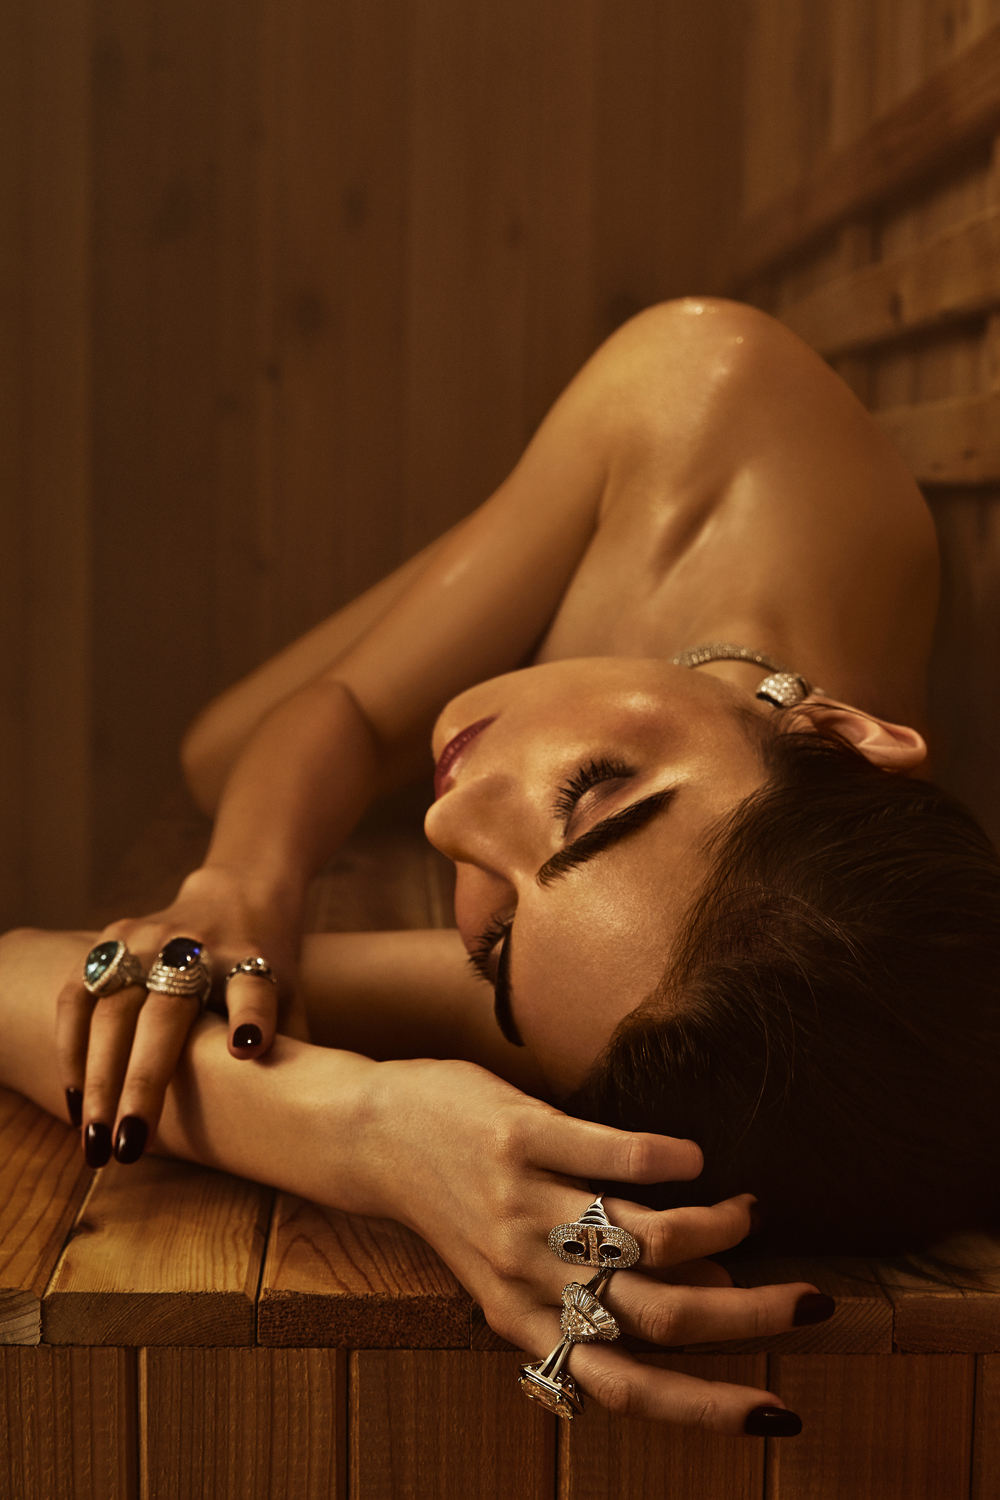 THE IMPRESSION MAGAZINE: SAUNA